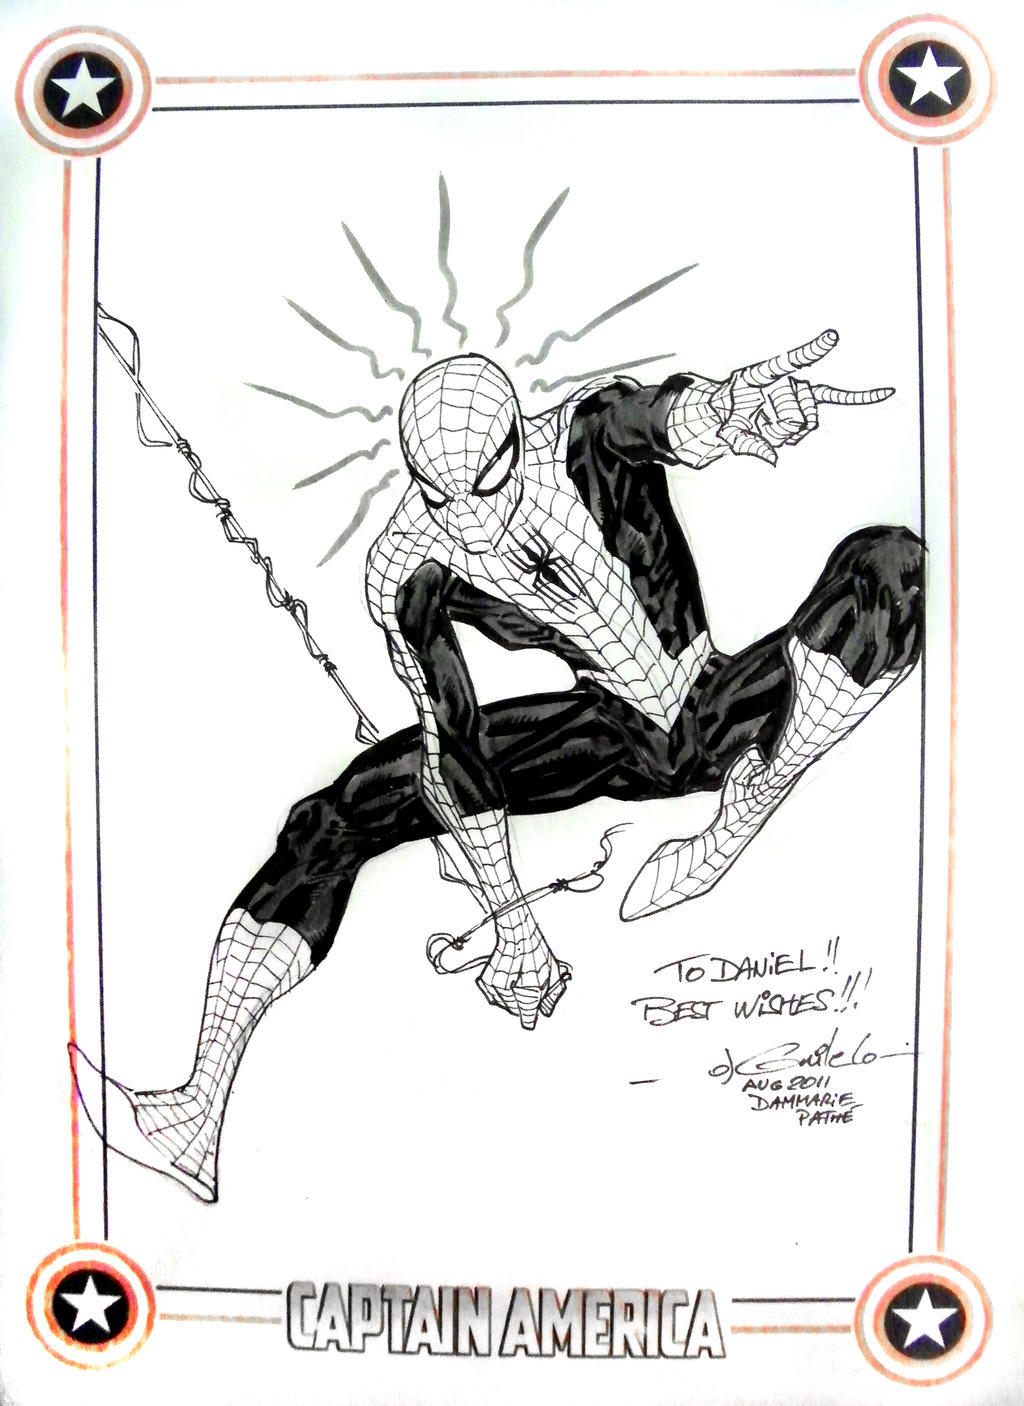 DnD Paris Spider-Man sketch by SpiderGuile